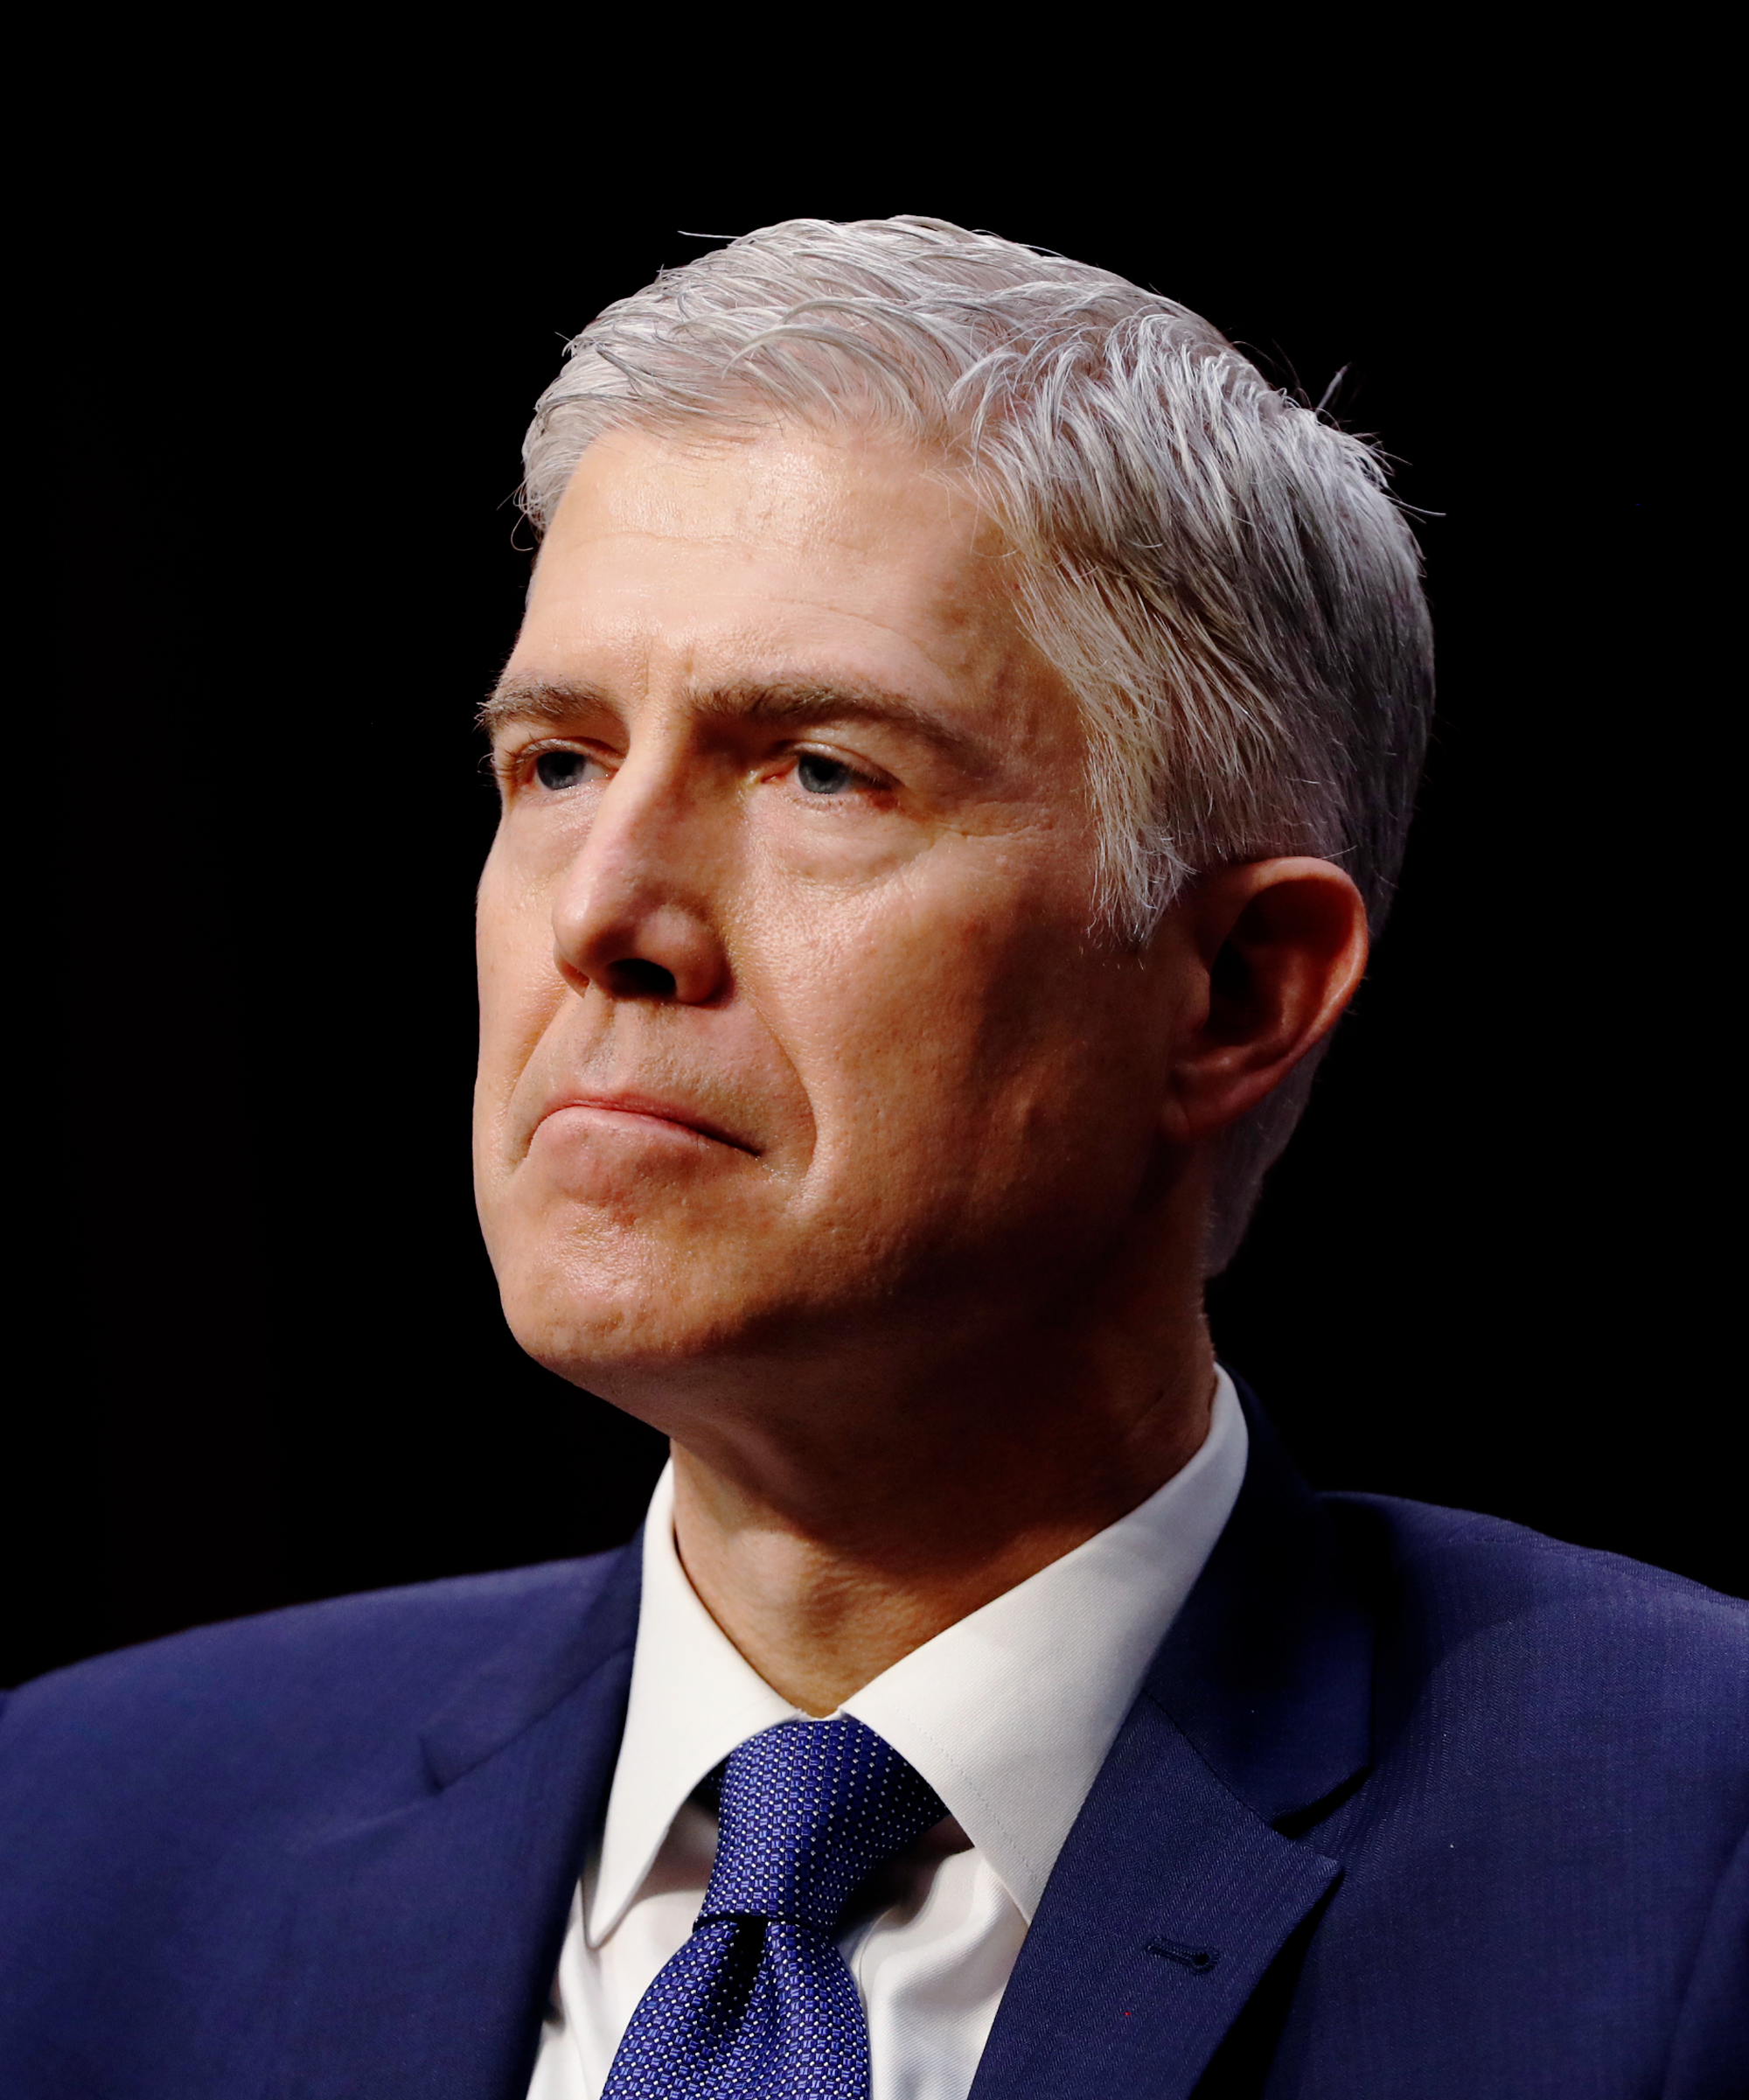 Gorsuch confirmed: Cardin, Van Hollen vote NO